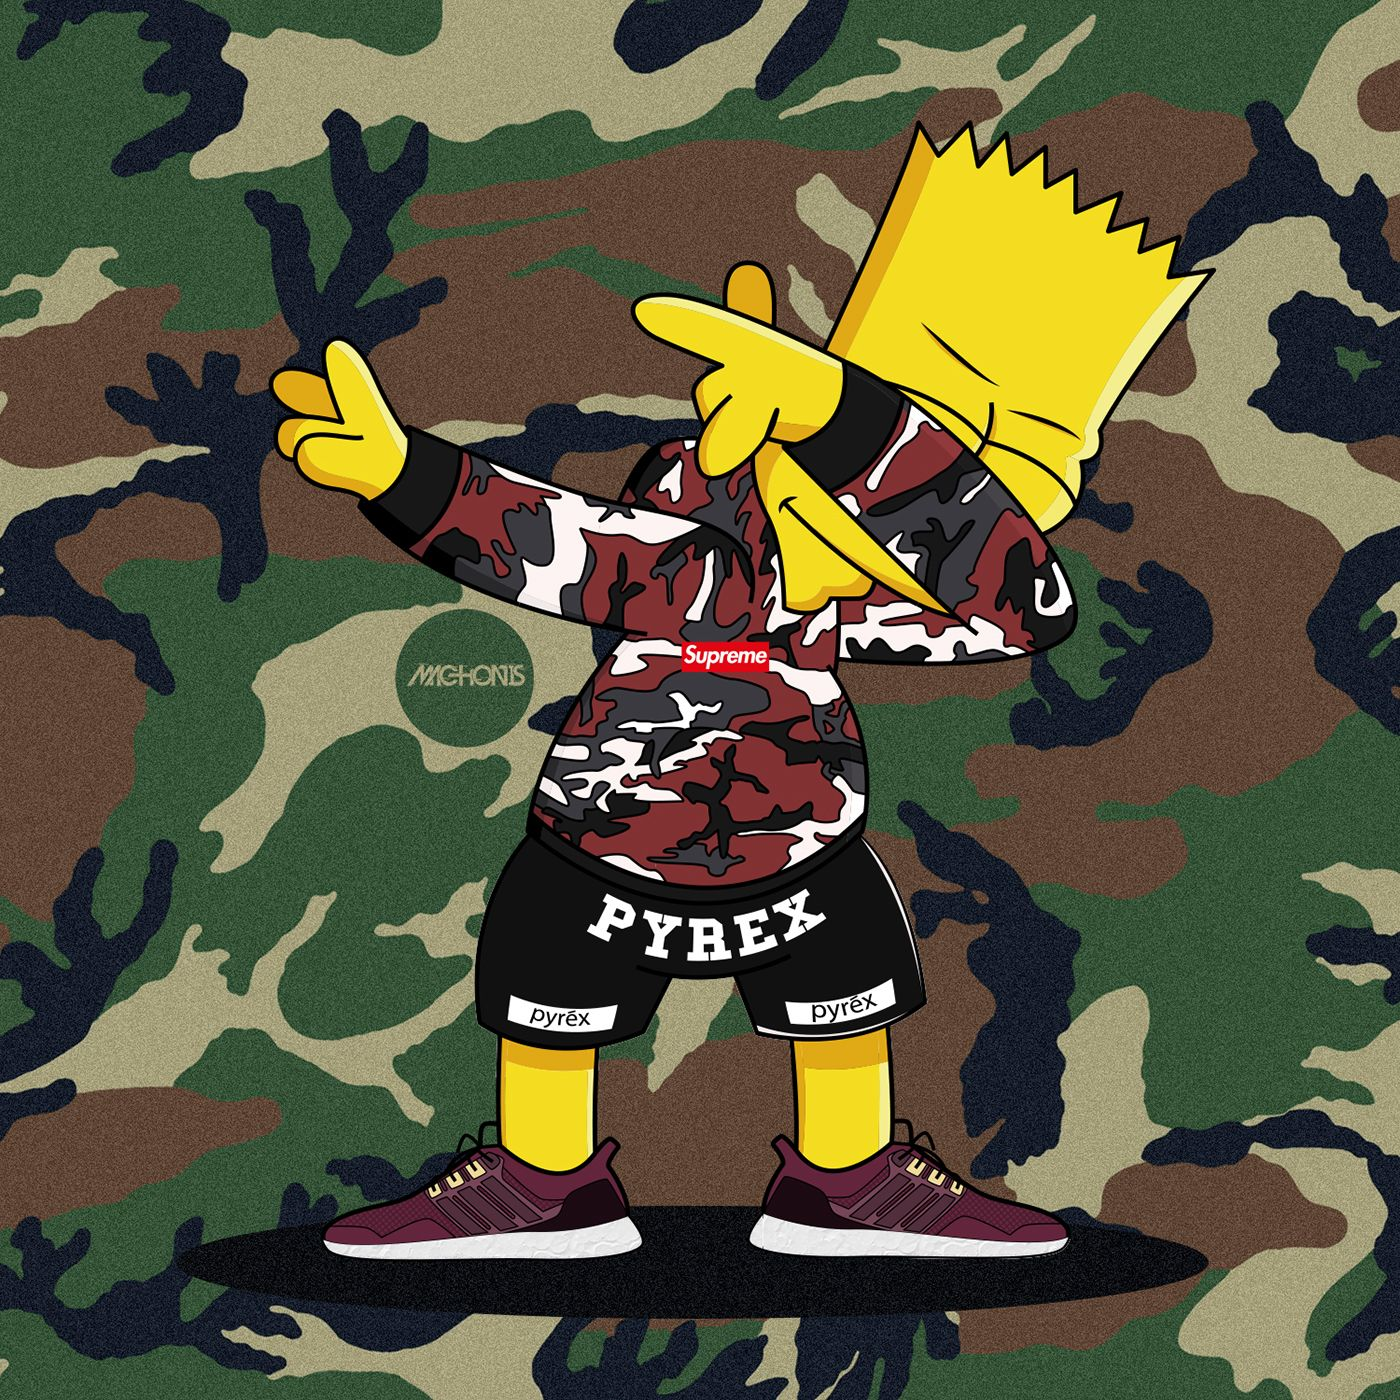 1400x1400 Dabbin' Bart Simpson ❌ Supreme ❌ Adidas Ultra Boost on Behance ...